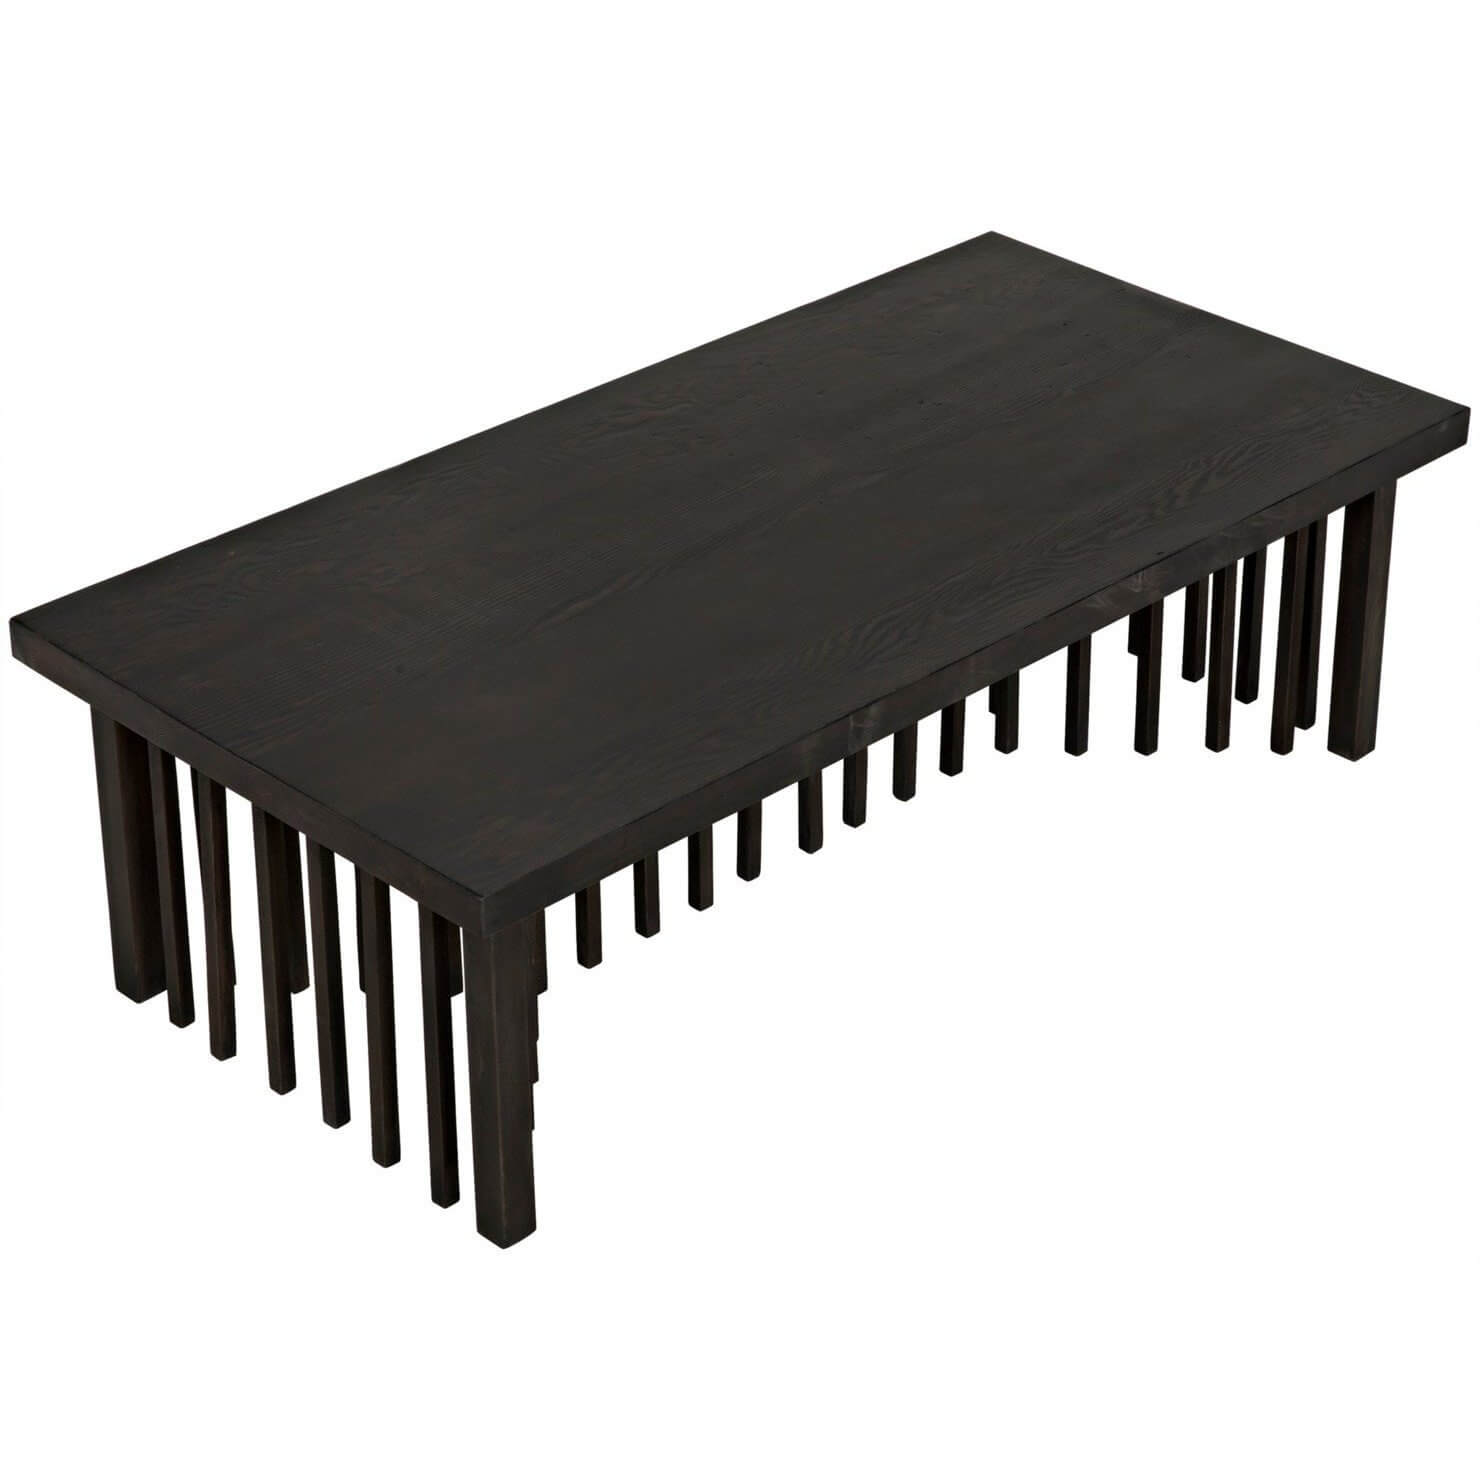 Centipede Coffee Table